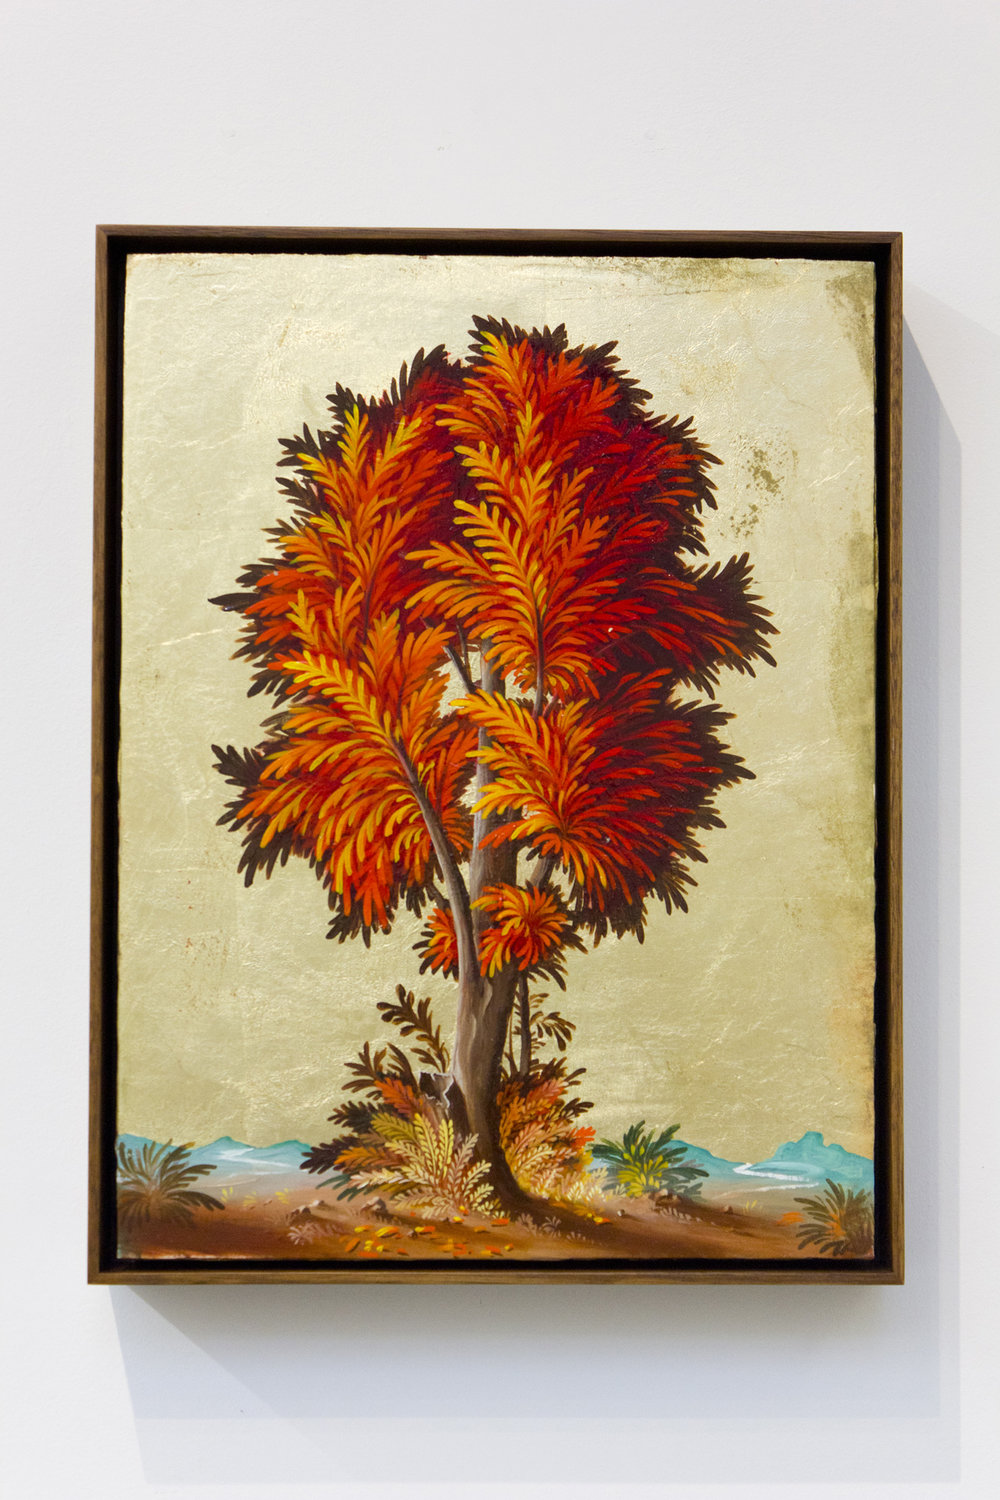 PETER DAVERINGTON   Portrait of a Tree #4  2017 Oil and gold leaf on panel 41 x 31 cm Frame: 43 x 33 cm